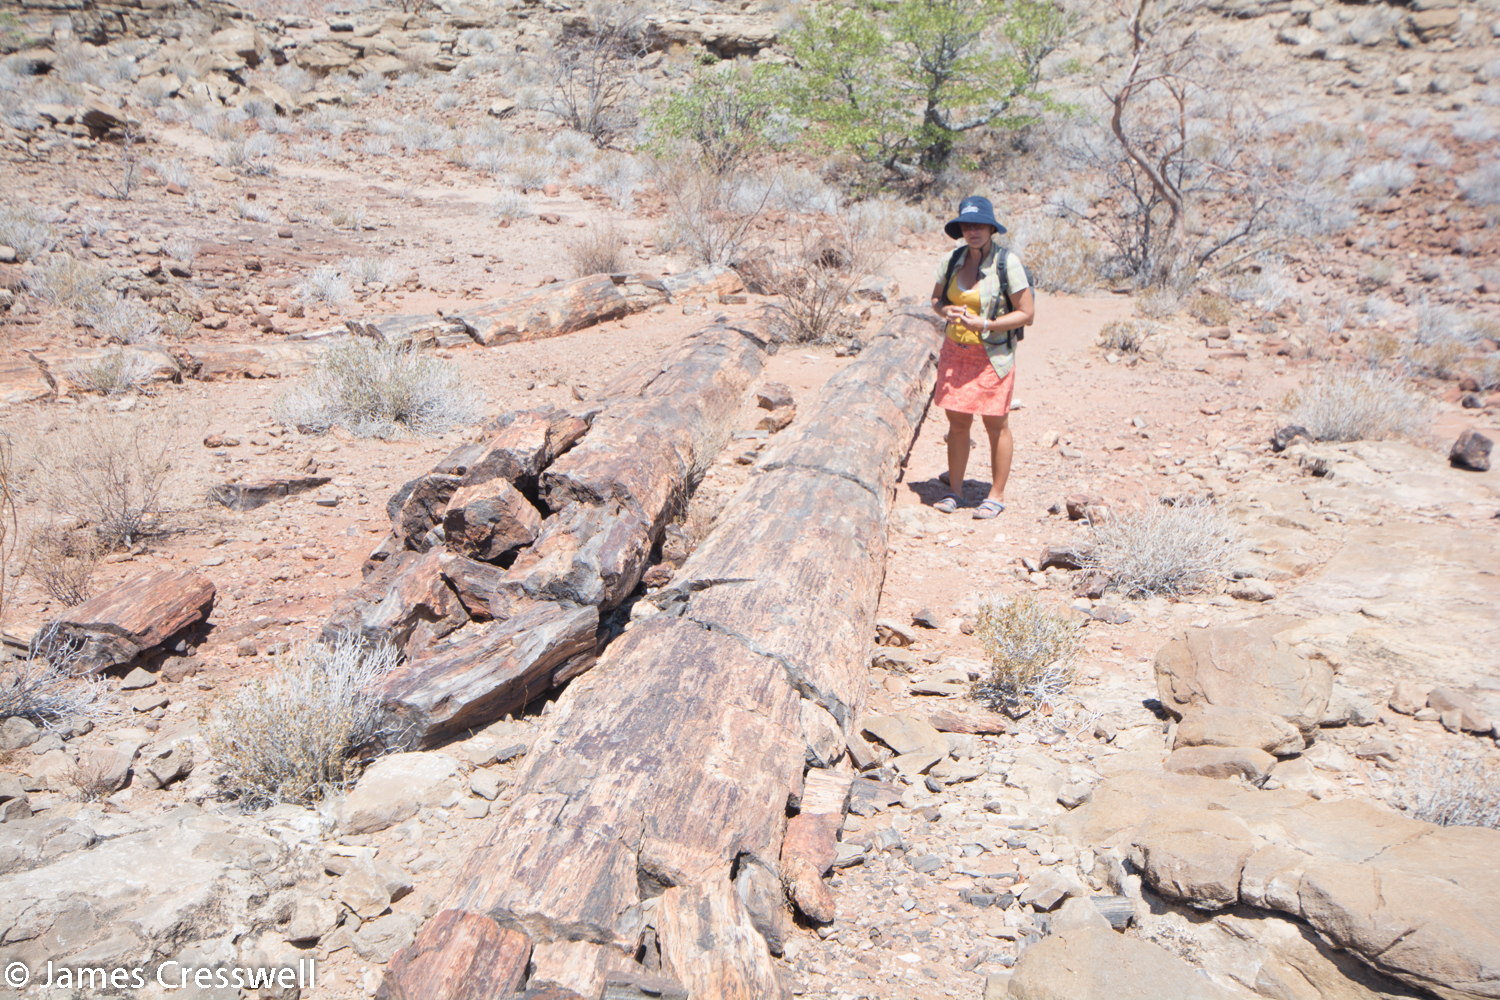 Nicole Grünert with 270ma Permian petrified trees which grew in cold humid conditions and were up to 30m high. The trees are contained within fluvial sediments of the Karoo supergroup. Namibia.